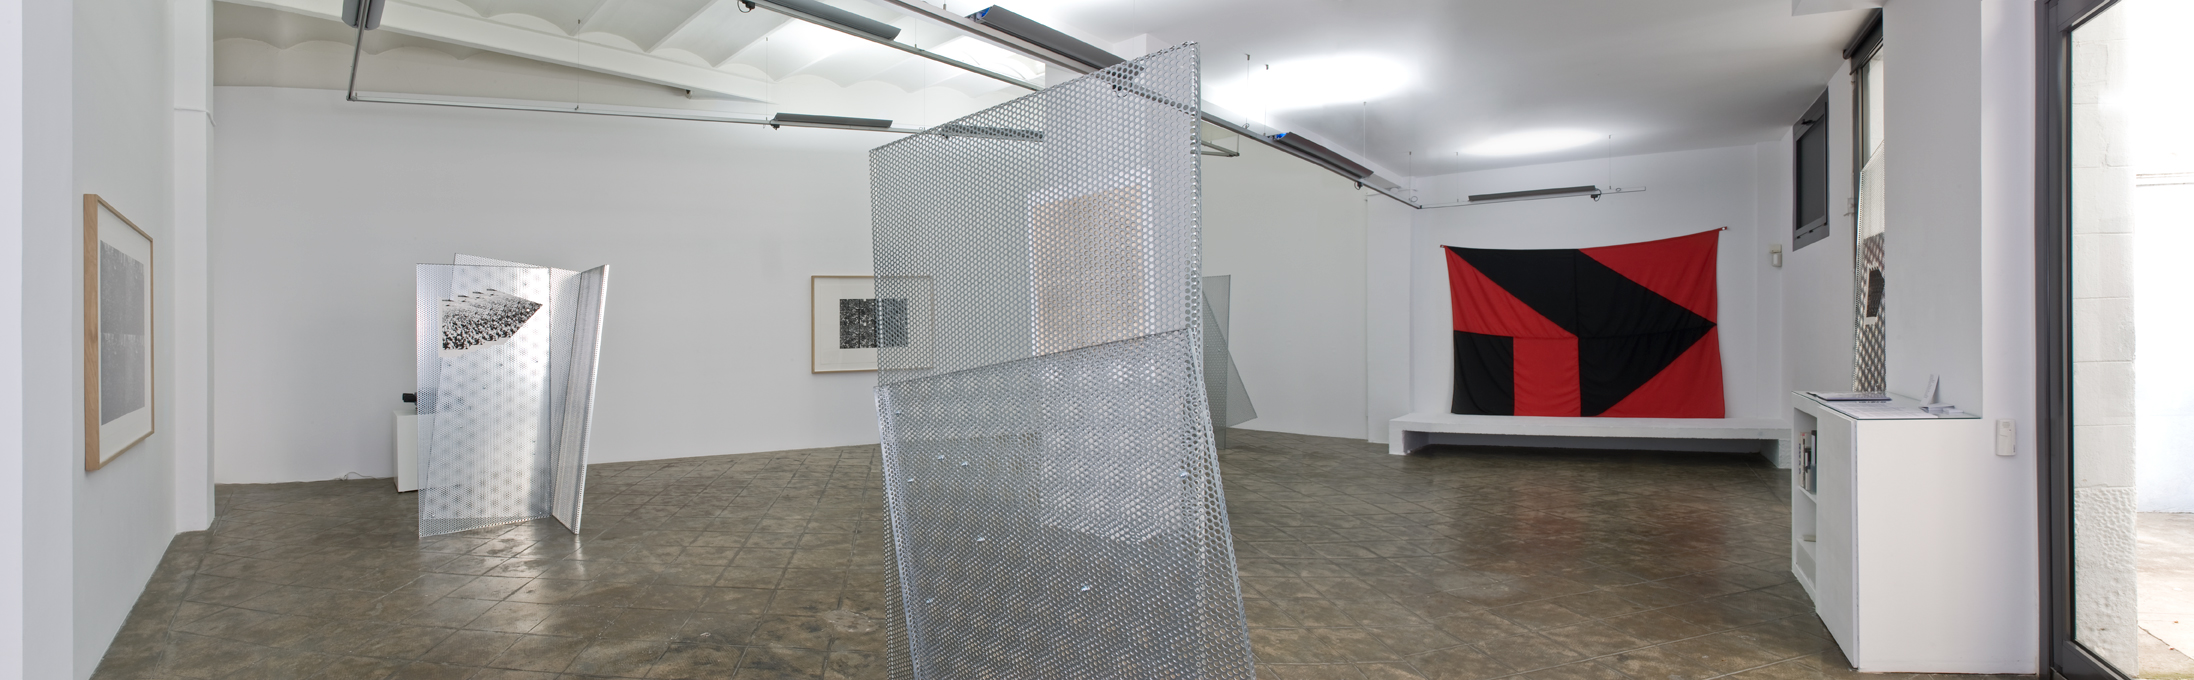 Installation view: Asier Mendizabal, 2012, ProjecteSD, Barcelona |  | ProjecteSD